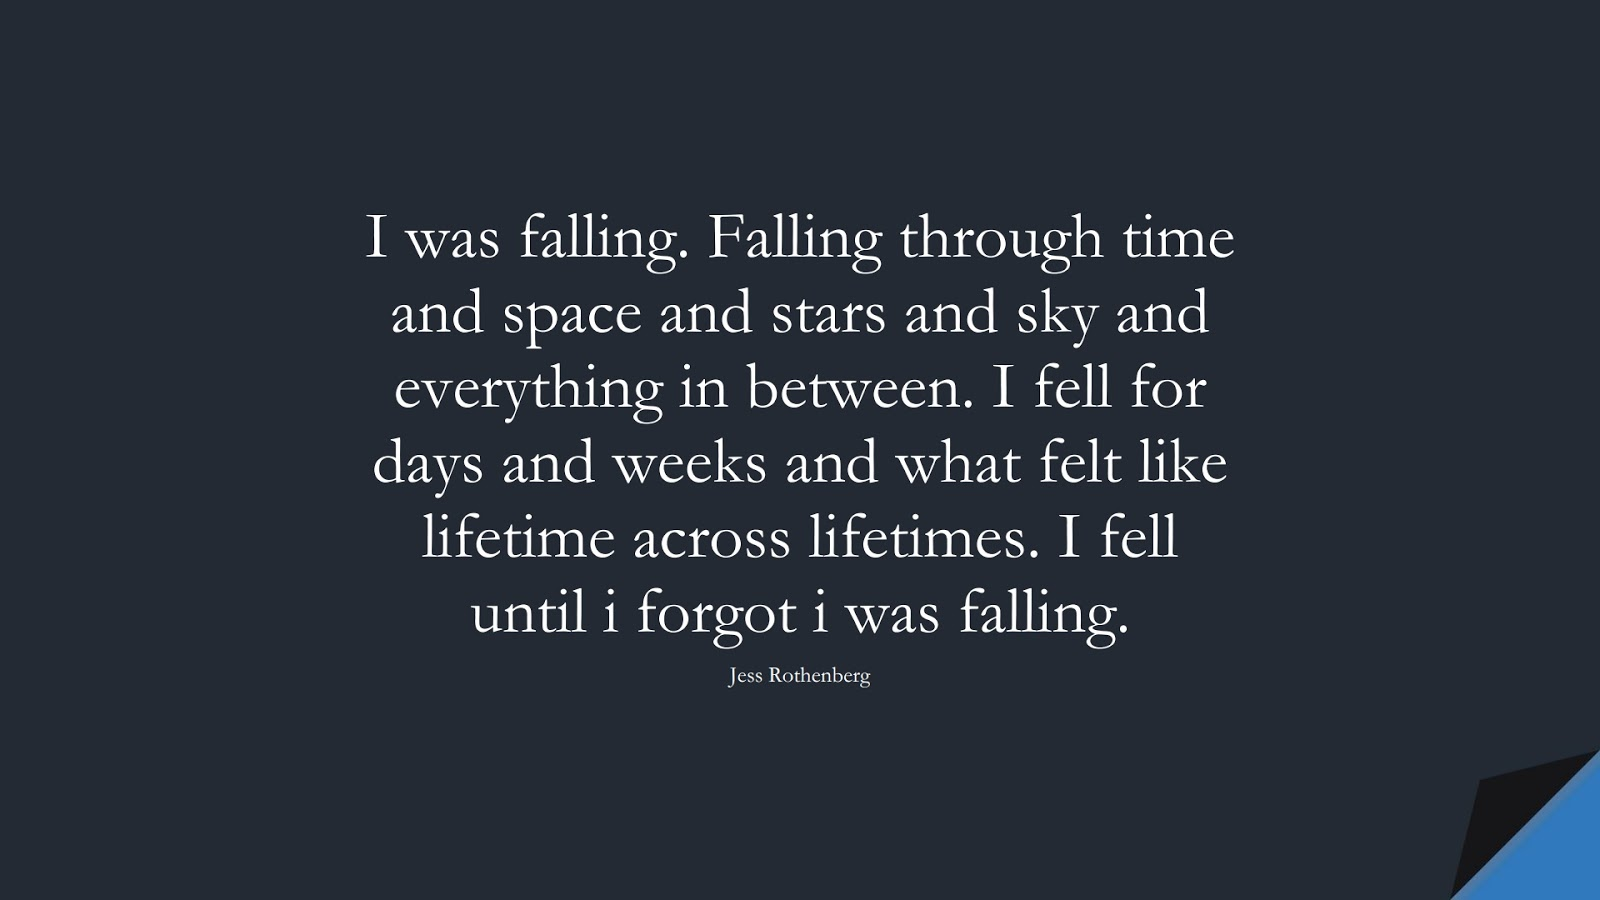 I was falling. Falling through time and space and stars and sky and everything in between. I fell for days and weeks and what felt like lifetime across lifetimes. I fell until i forgot i was falling. (Jess Rothenberg);  #LoveQuotes